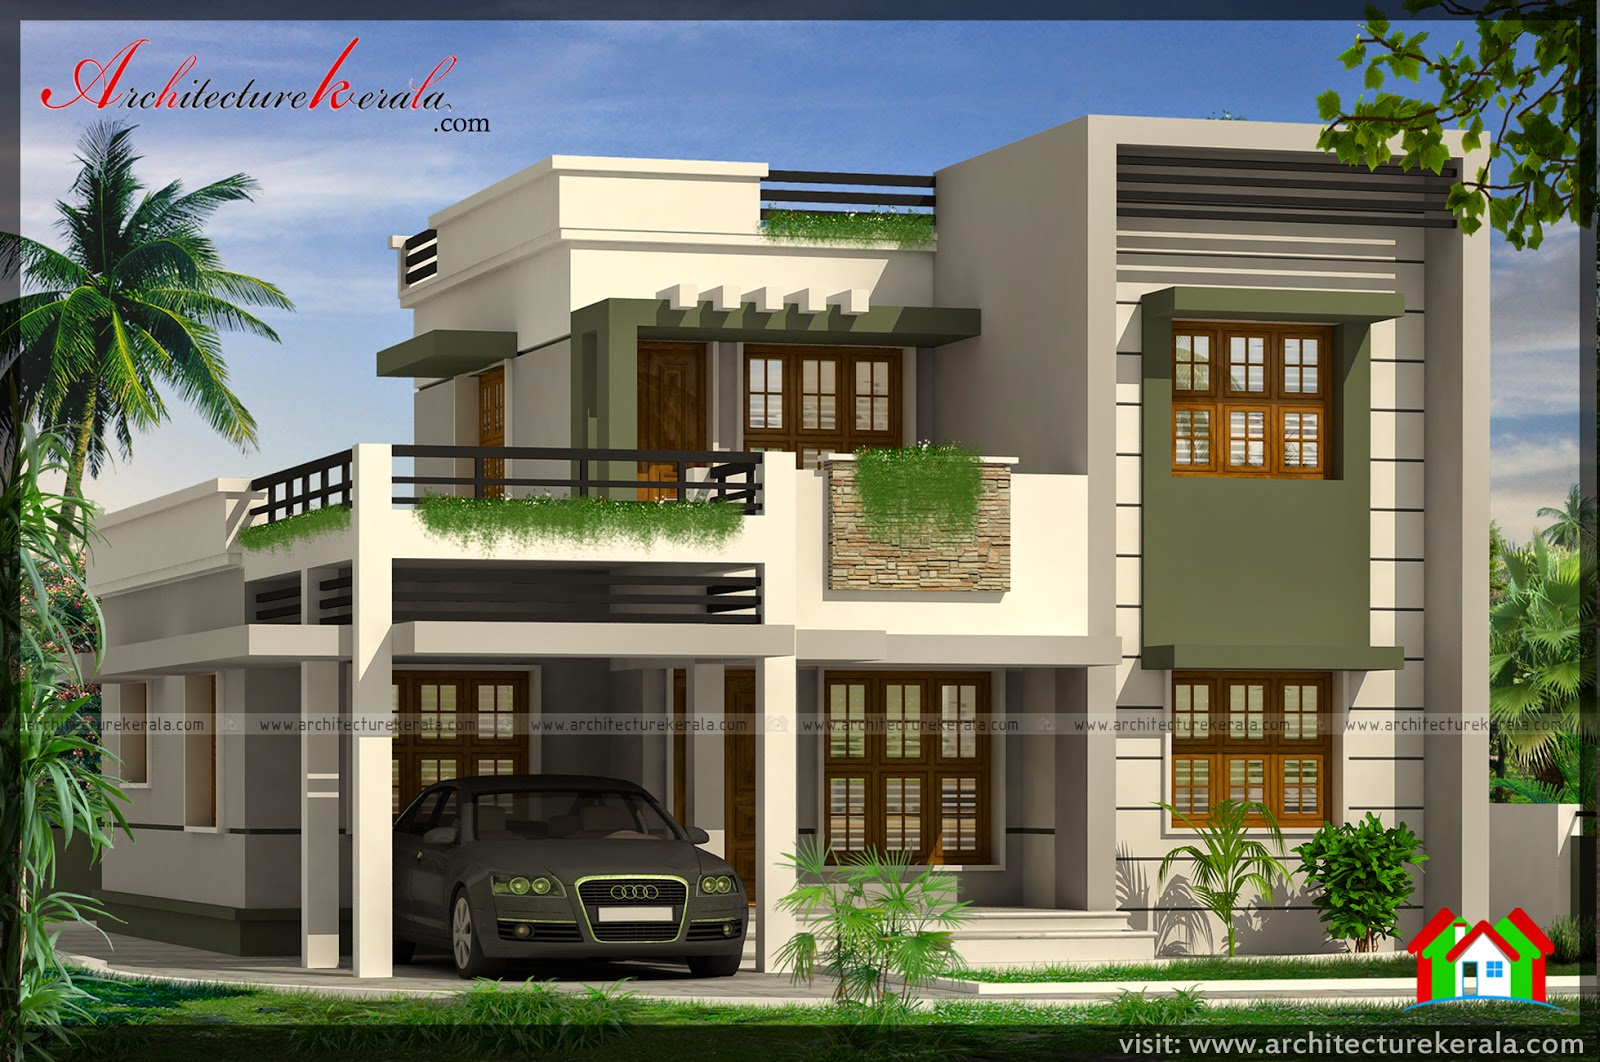 BELOW 2000 SQUARE FEET HOUSE PLAN AND ELEVATION ARCHITECTURE KERALA